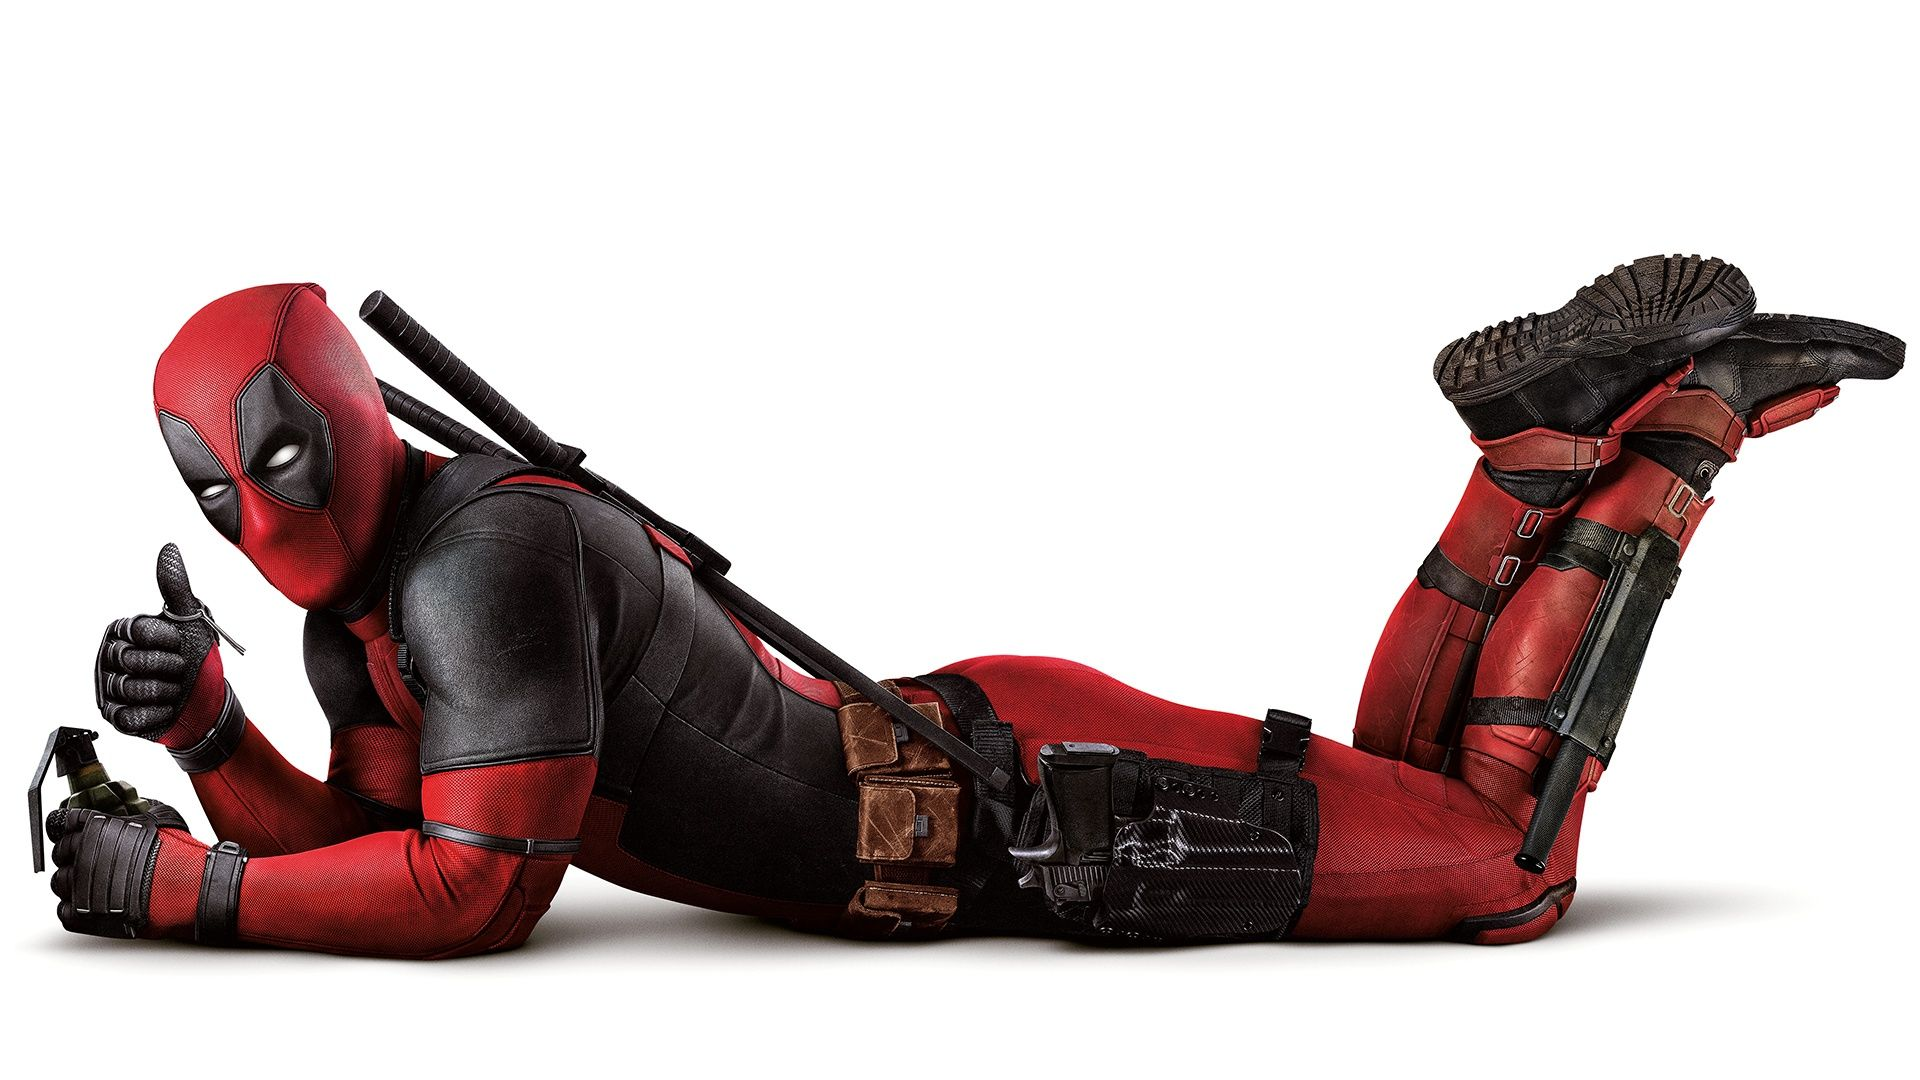 HD Deadpool Wallpaper jpg  1920    1080    DEADPOOL   Pinterest     HD Deadpool Wallpaper jpg  1920    1080